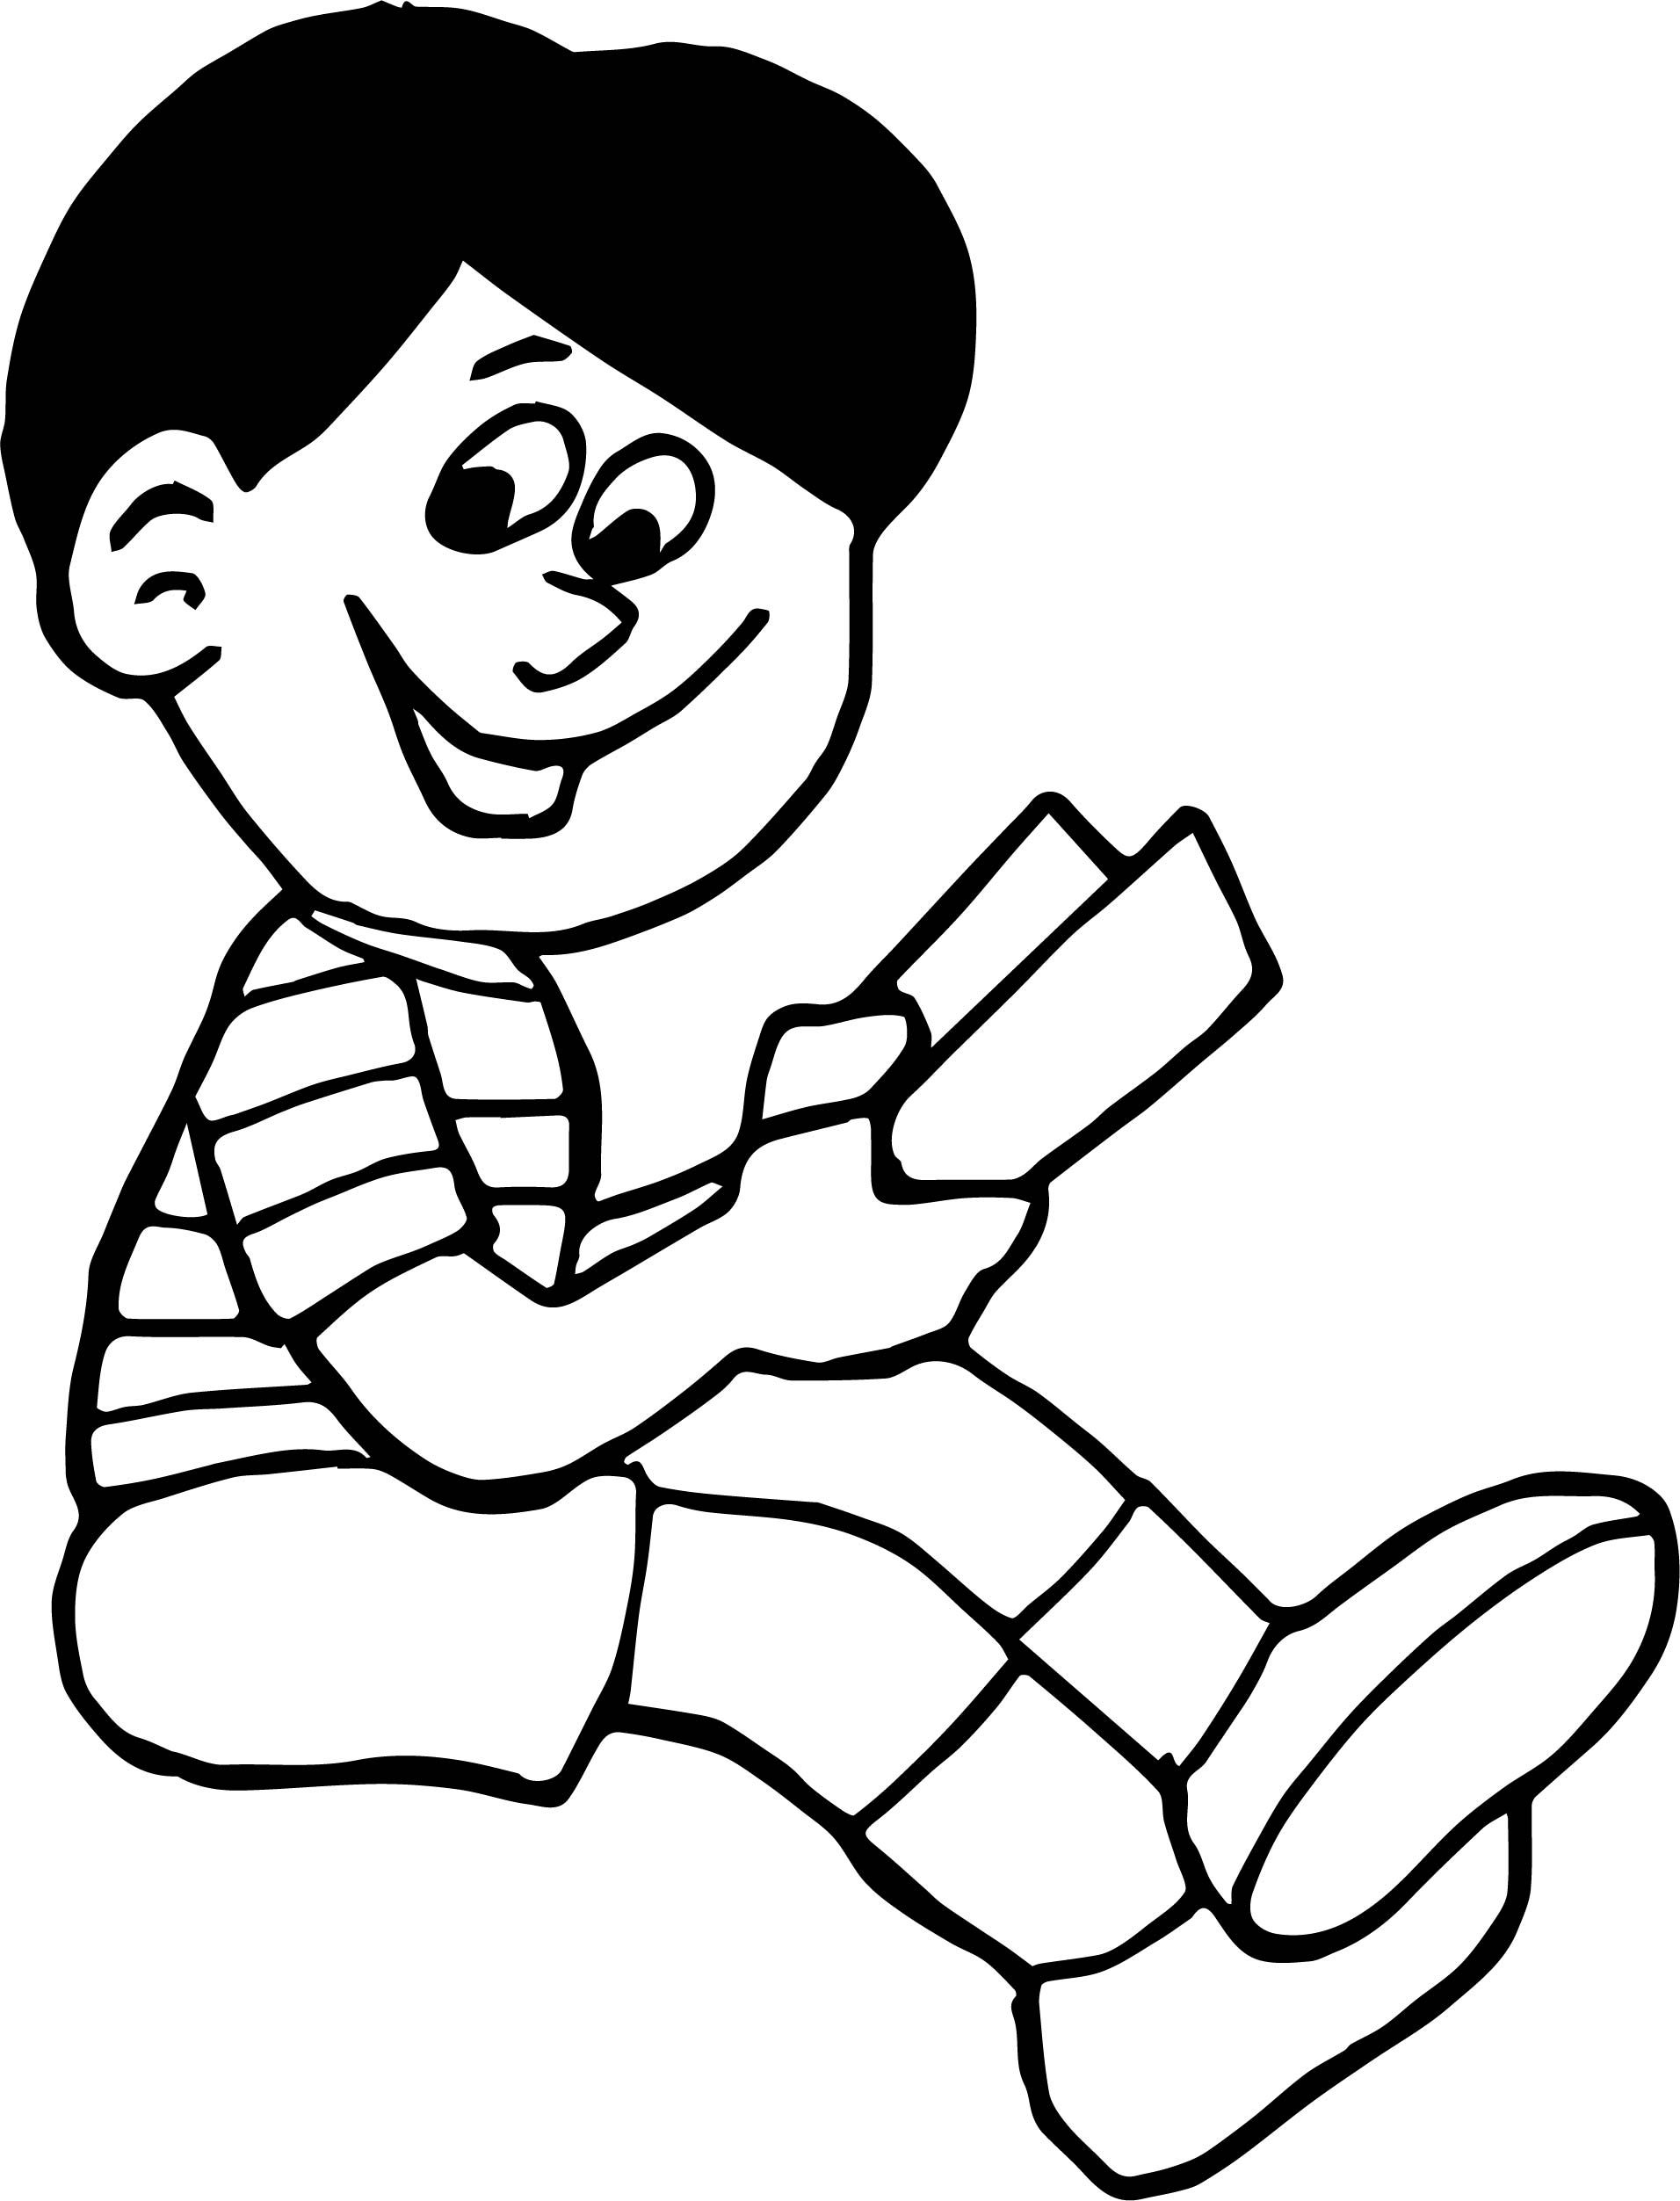 Awesome Boy Reading Book Coloring Page Cartoon Coloring Pages Coloring Pages Paw Patrol Coloring Pages